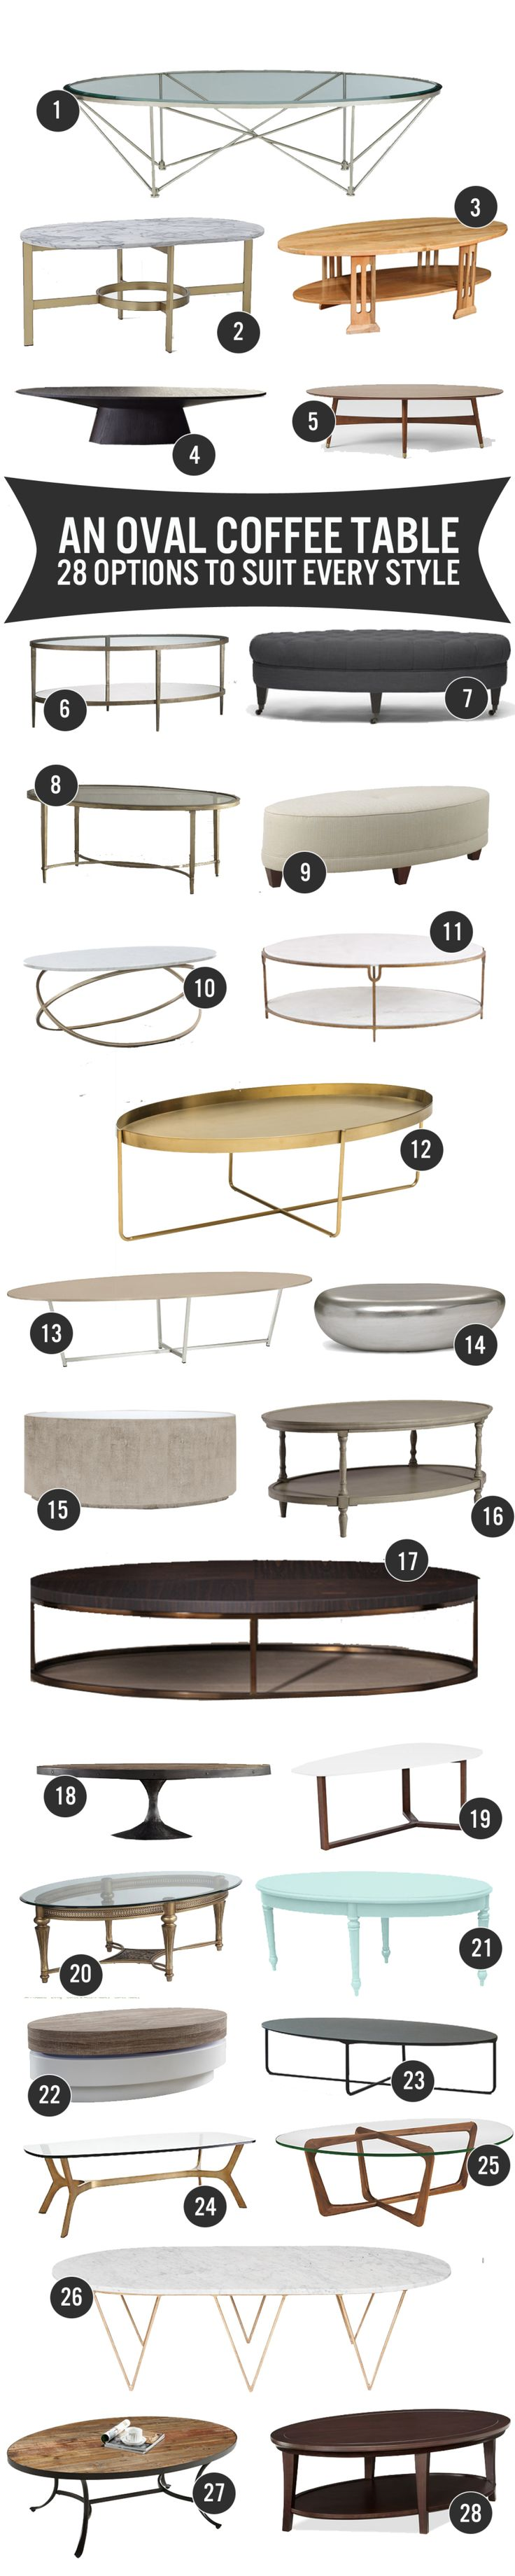 Best 25 Oval coffee tables ideas on Pinterest